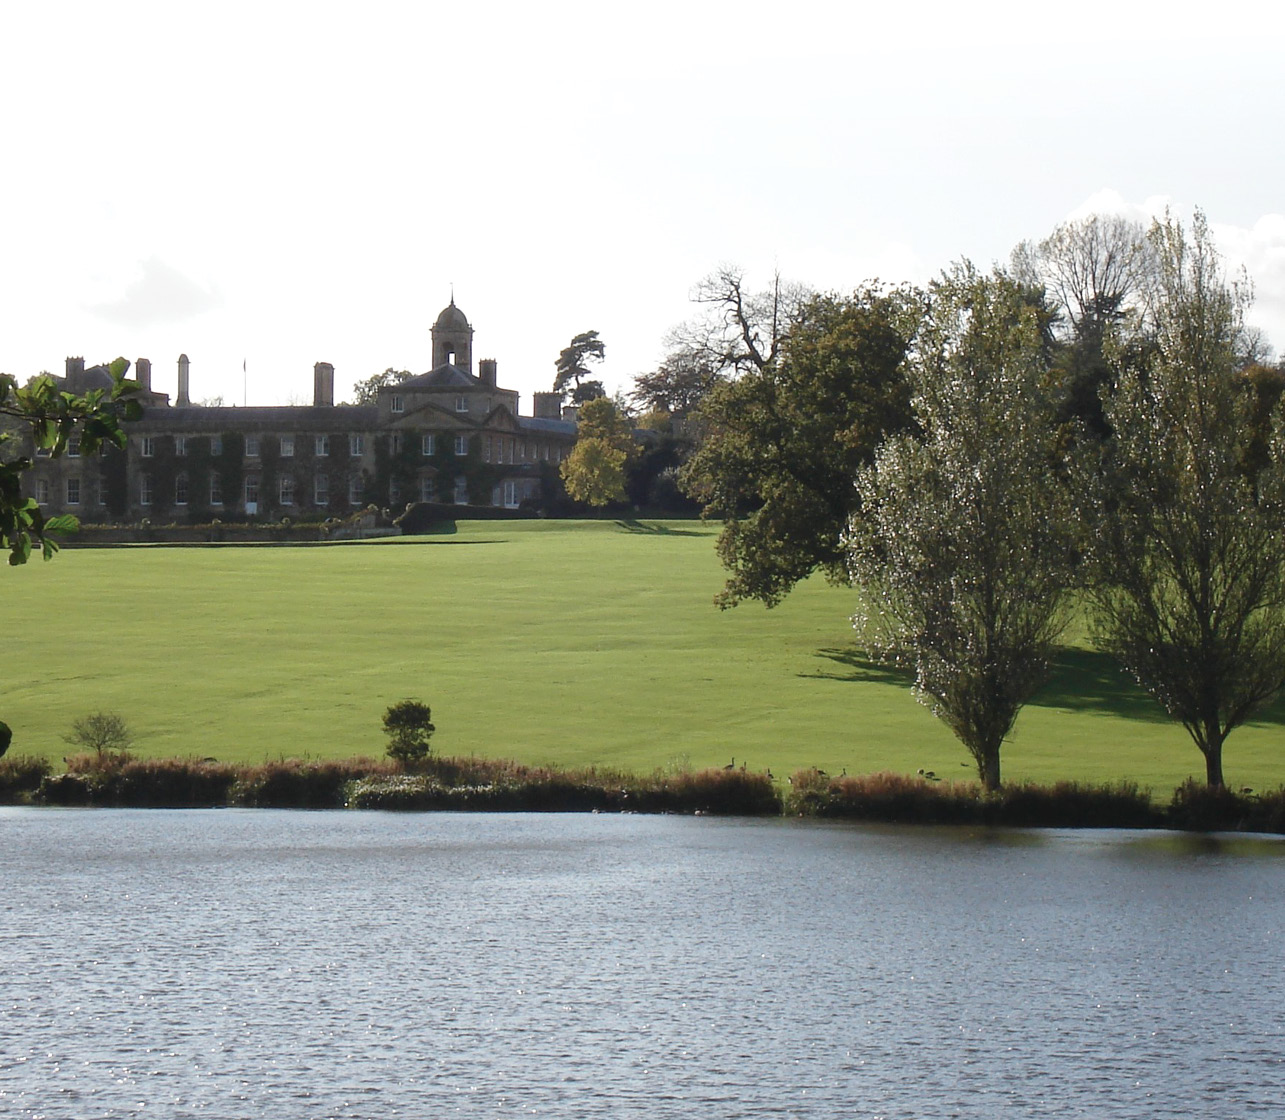 left This view of the lake at Bowood House, Wiltshire, shows the mid-18th-century ideal of a gentle slope from house to lake. Another of 'Capability' Brown's innovations was to include nitrogen-fixing and drought-resistant Dutch clover (Trifolium repens) in the grass seed mix to eliminate the need for fertiliser and ensure an attractive green sward all year round. below Another view of Bowood, Wiltshire, showing how the dam, to the right, has been disguised by tree planting, but is given away by the spillway grill that carries surplus water to the other side of the dam to prevent potentially erosive overtopping.